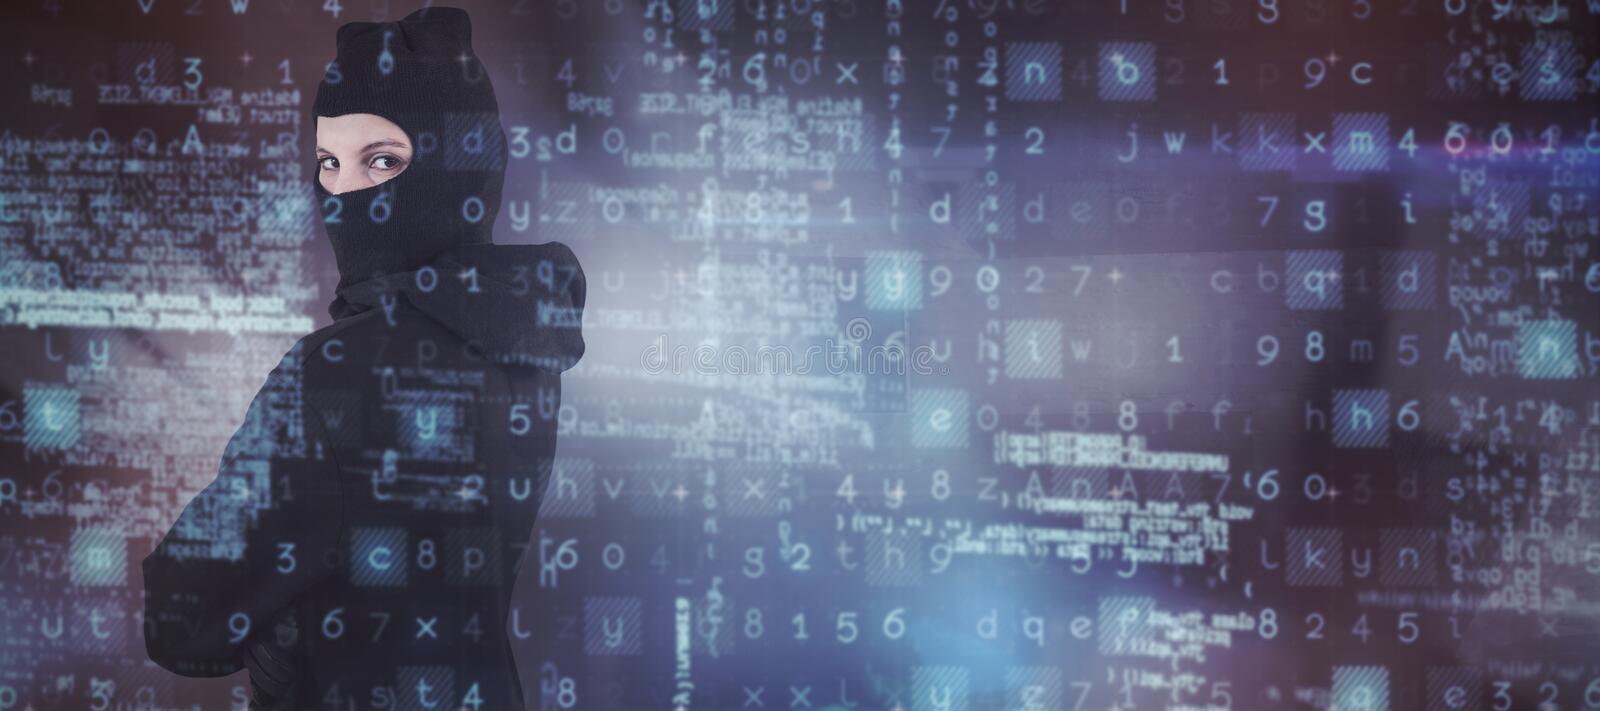 Composite image of portrait of female hacker standing wearing hoodie and balaclava royalty free stock photo